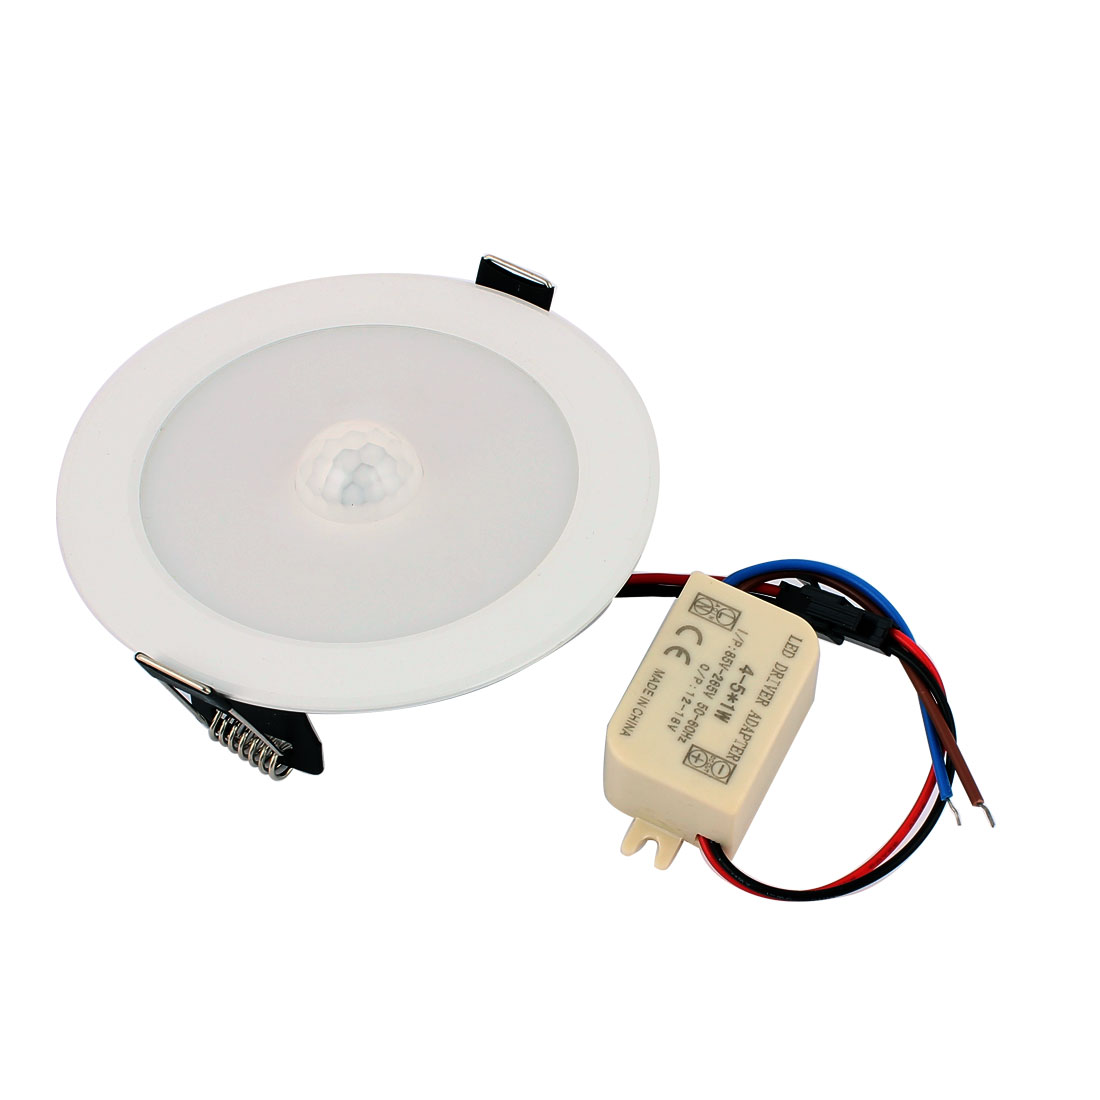 Ceiling Decor Downlight Light 10 LED Lamp 5W AC 85V-265V Motion Sensor Lighting